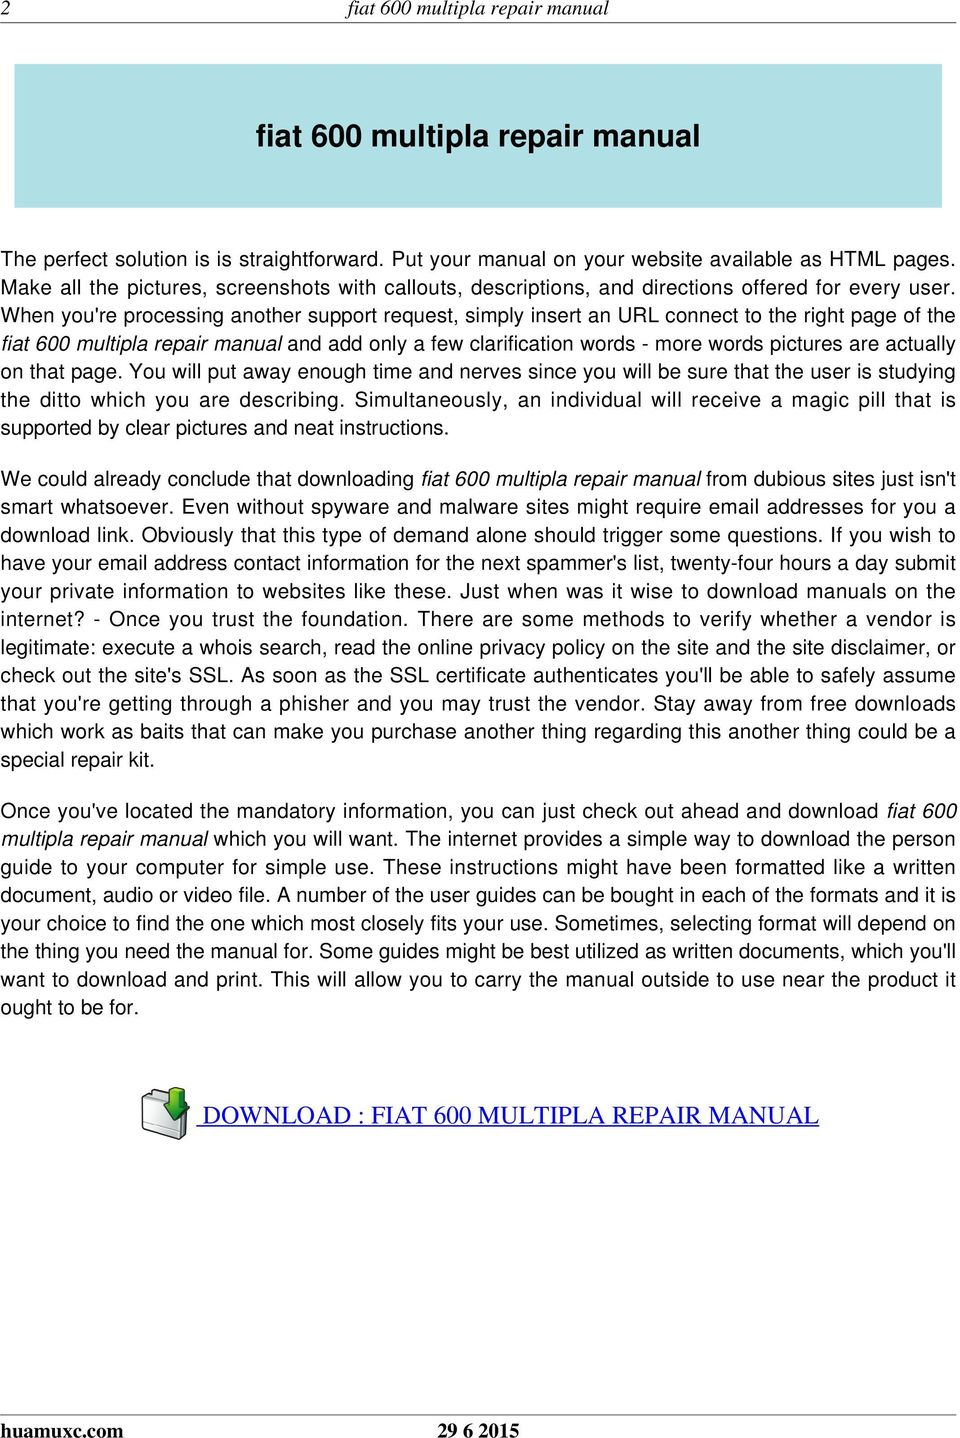 DOWNLOAD : FIAT 600 MULTIPLA REPAIR MANUAL. When you're processing another  support request, simply insert an URL connect to the